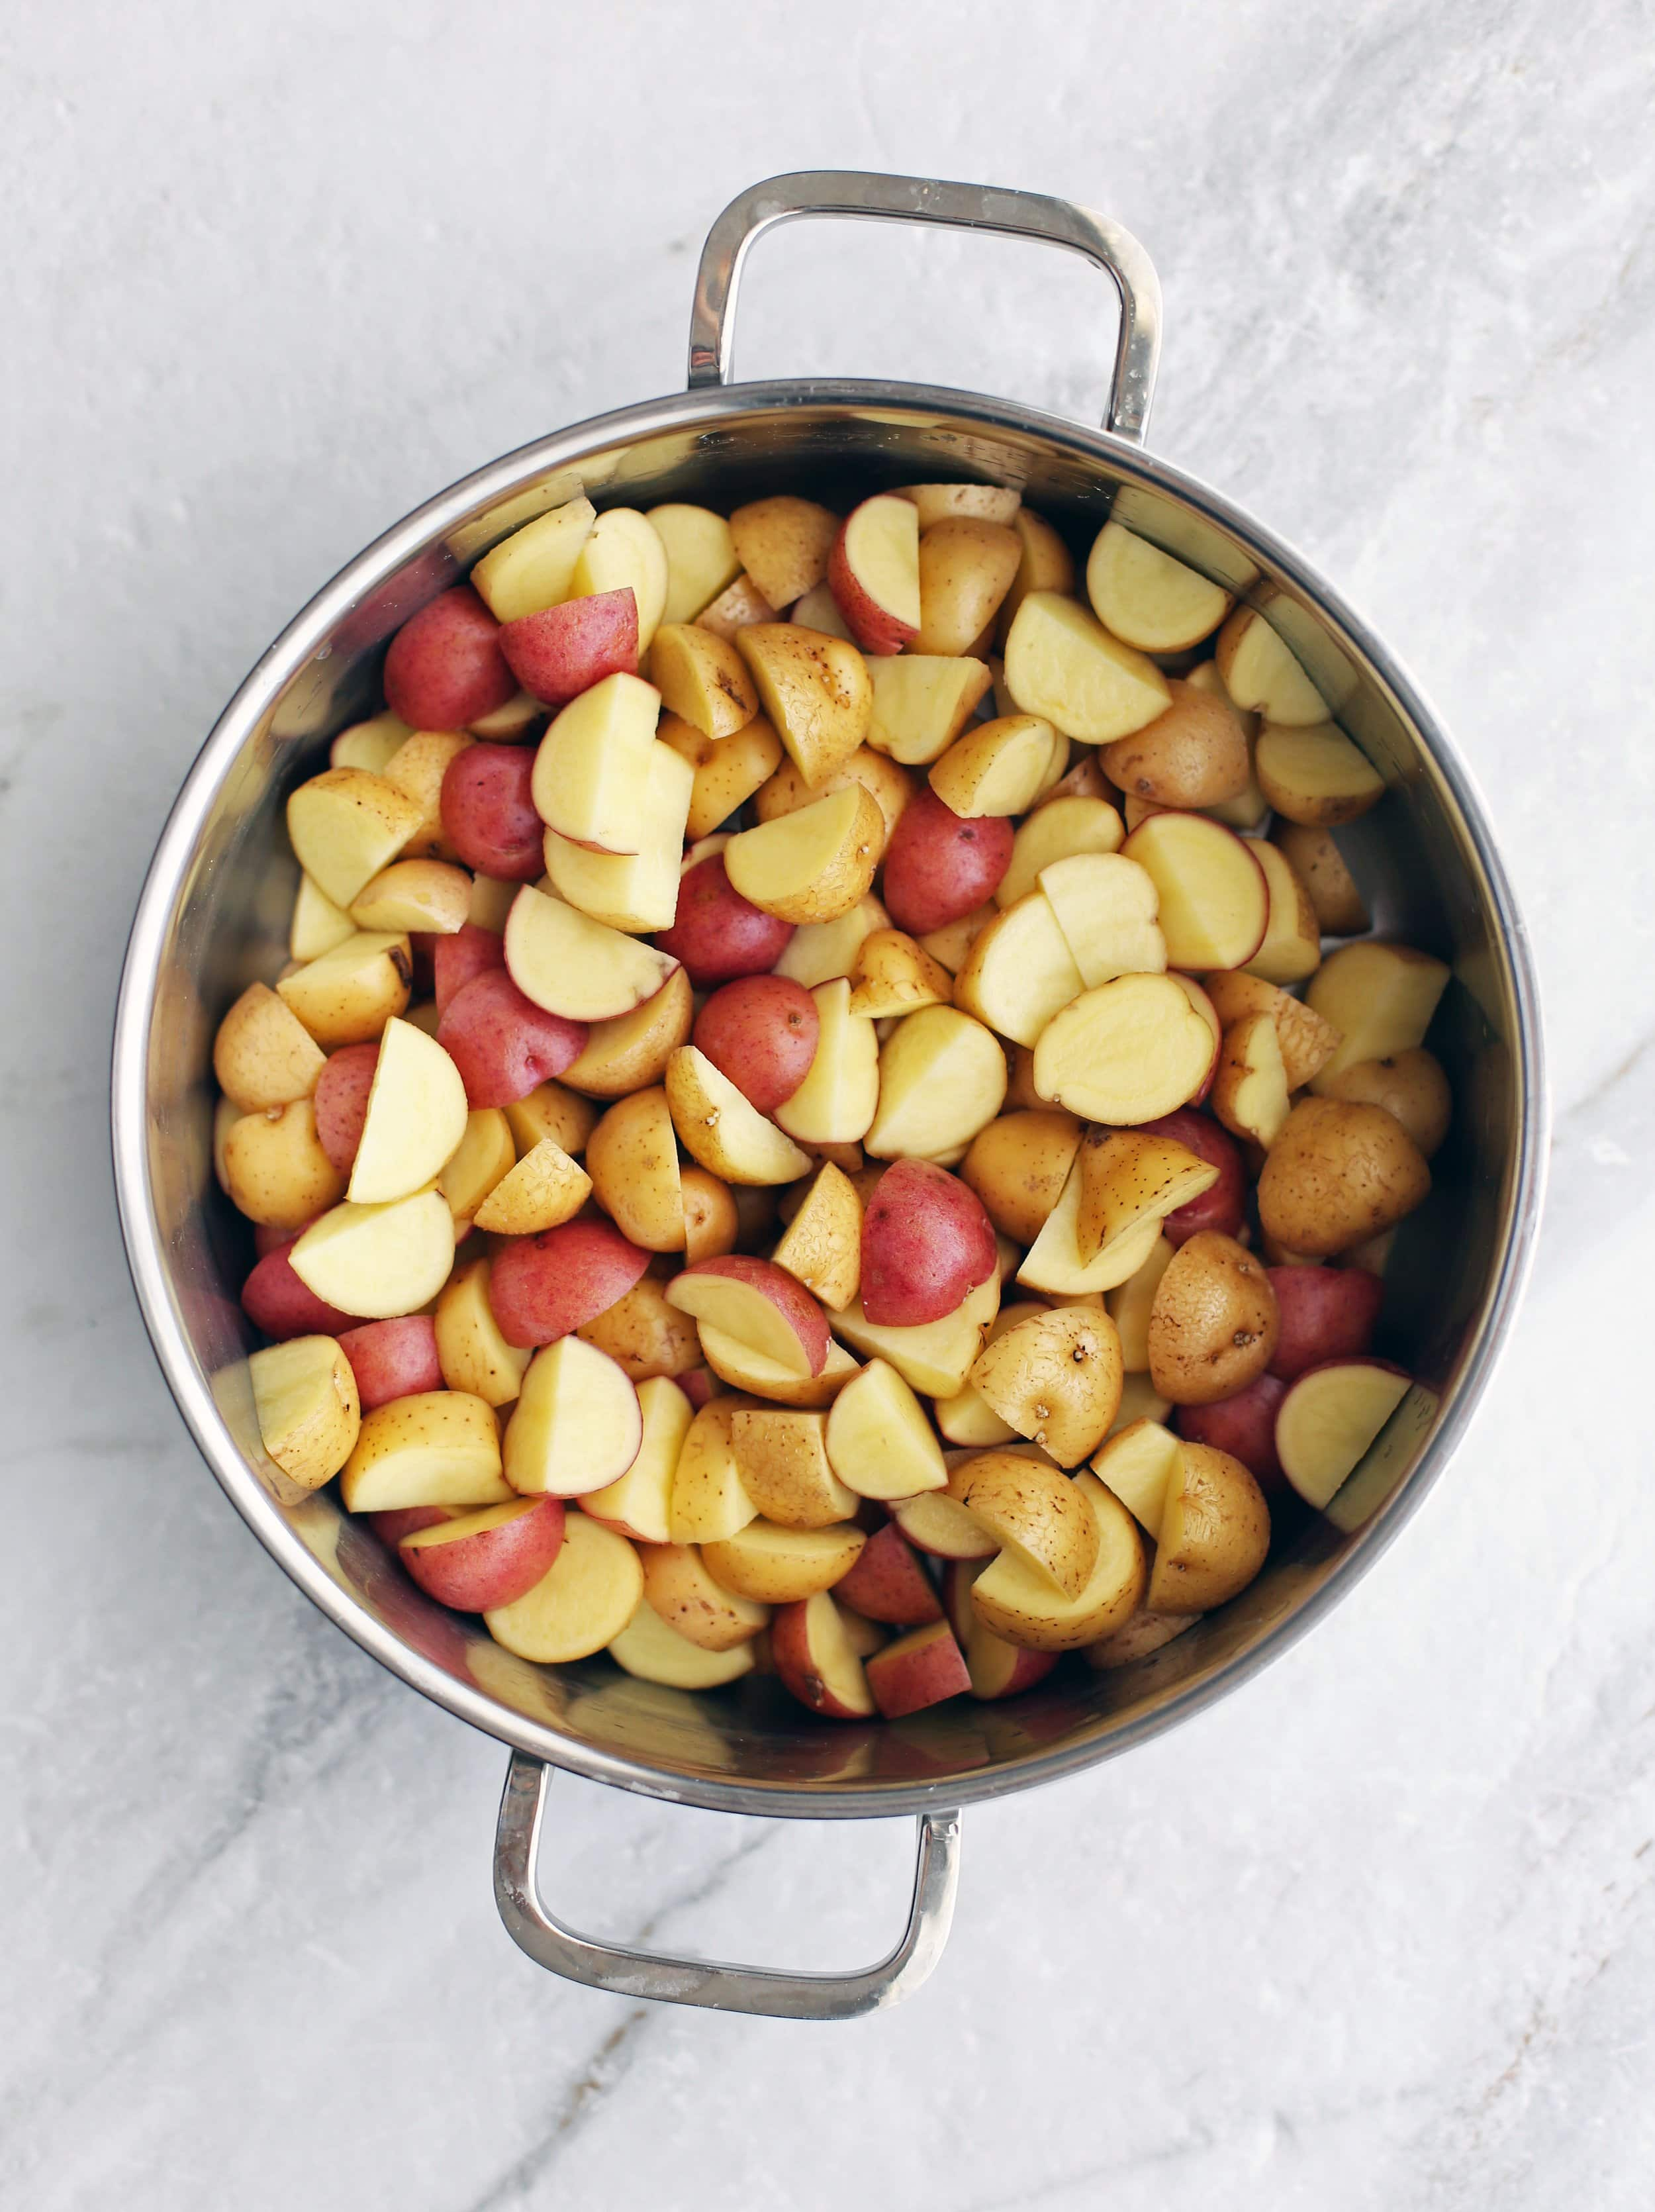 Quartered red and yellow baby potatoes in a large metal pot.